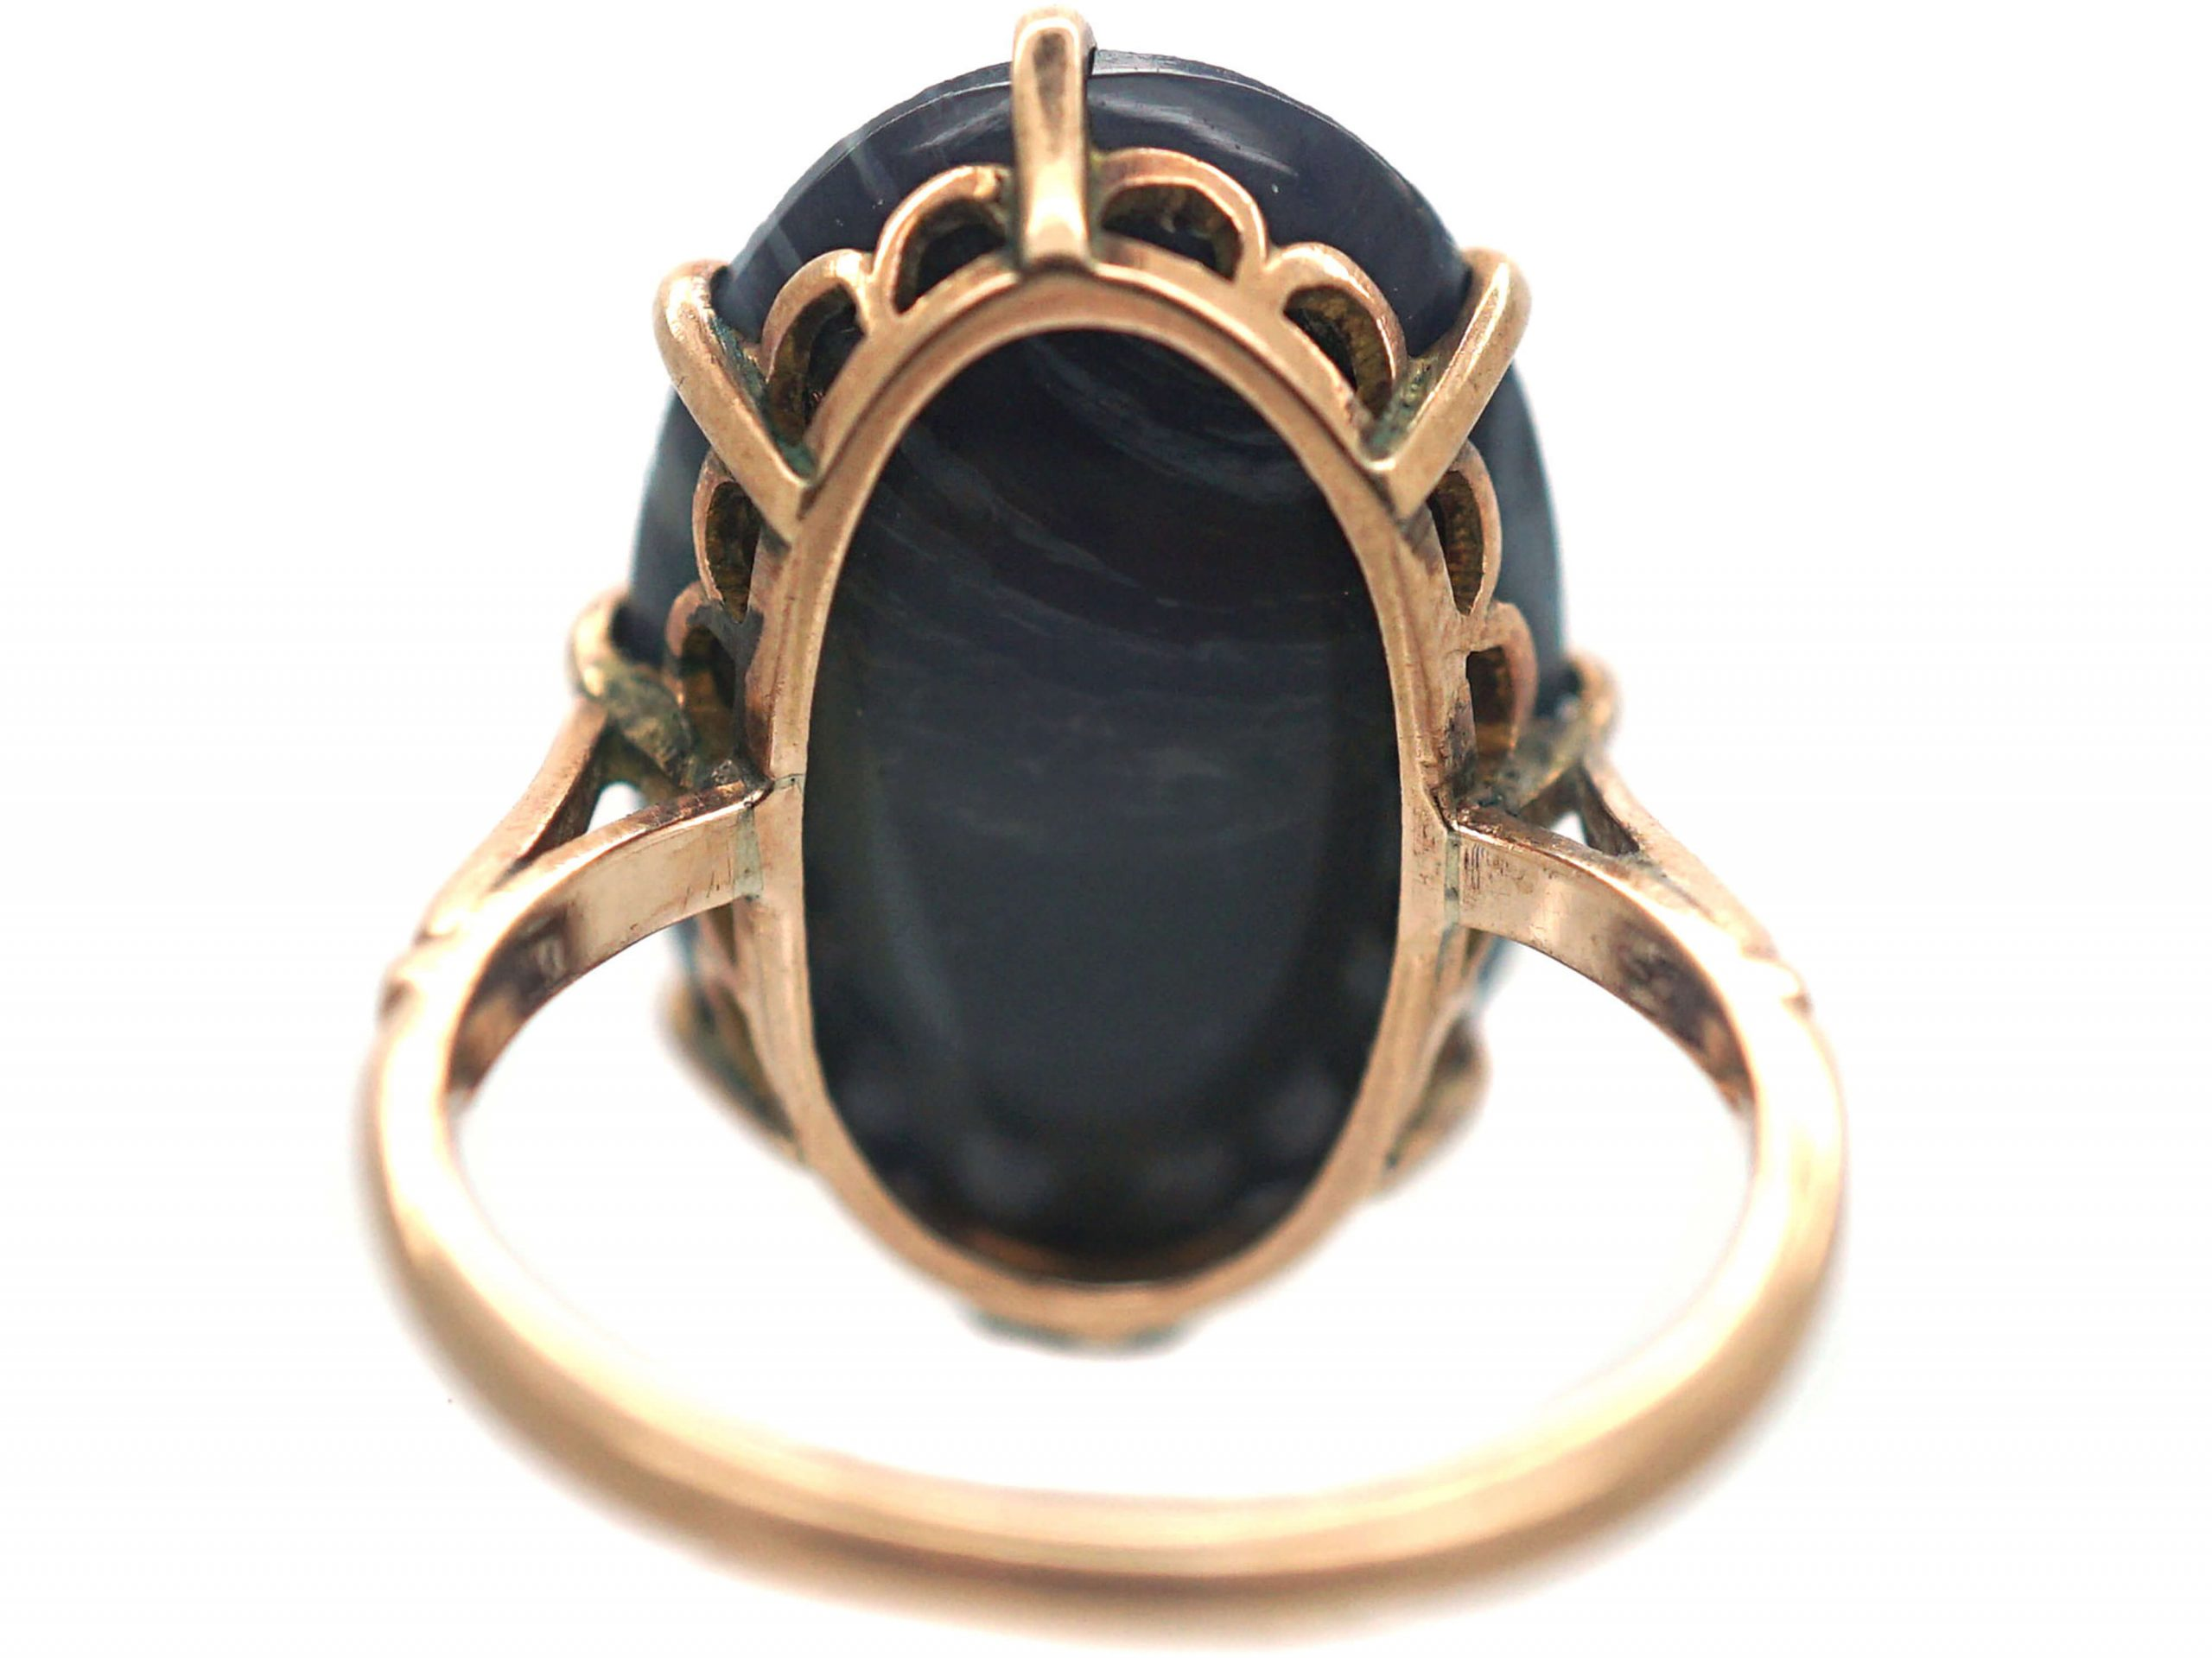 Art Deco 14ct Gold, Opal Doublet Ring